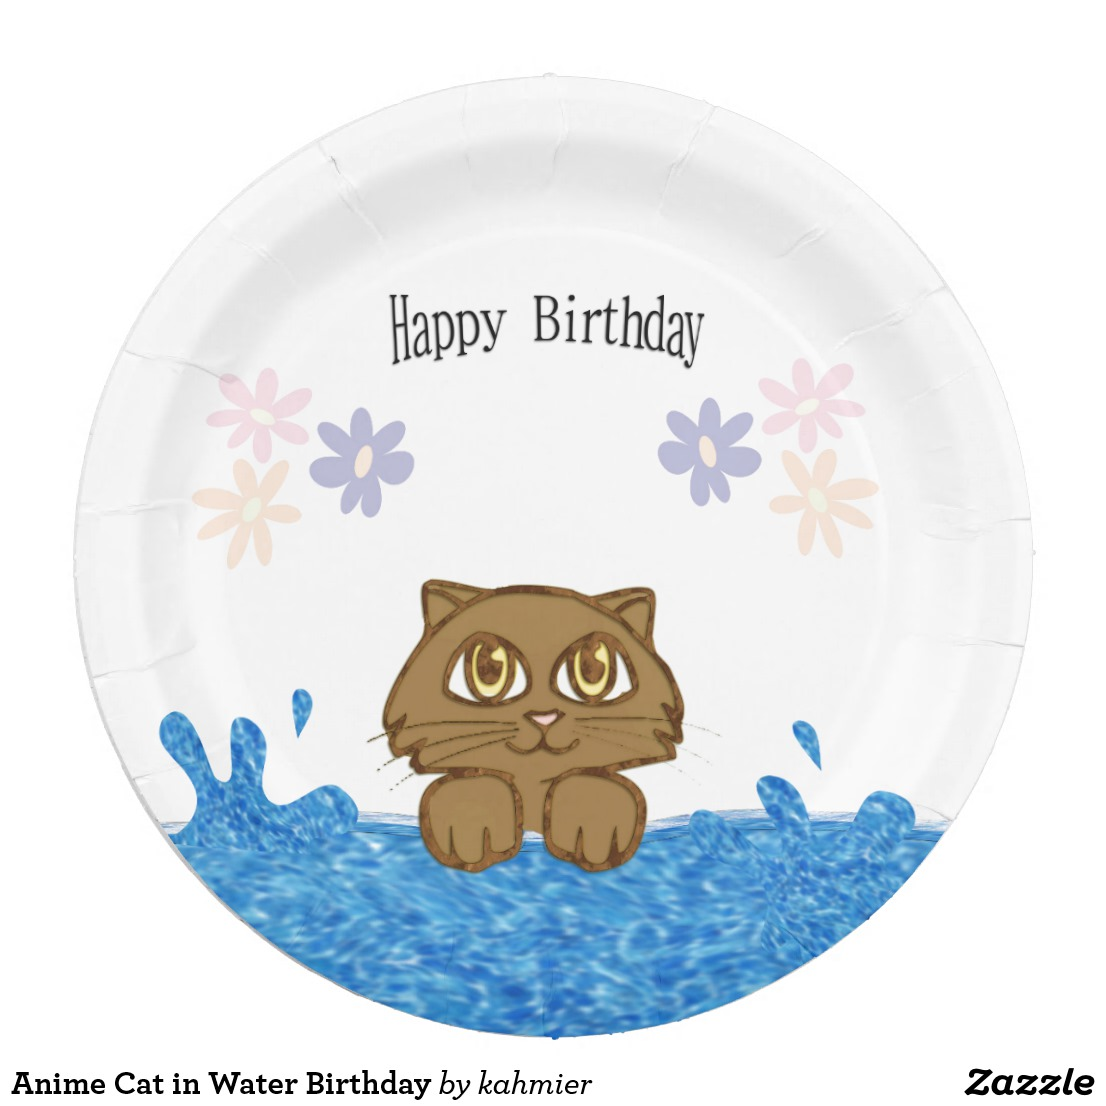 Anime Cat in Water Birthday Paper Plate